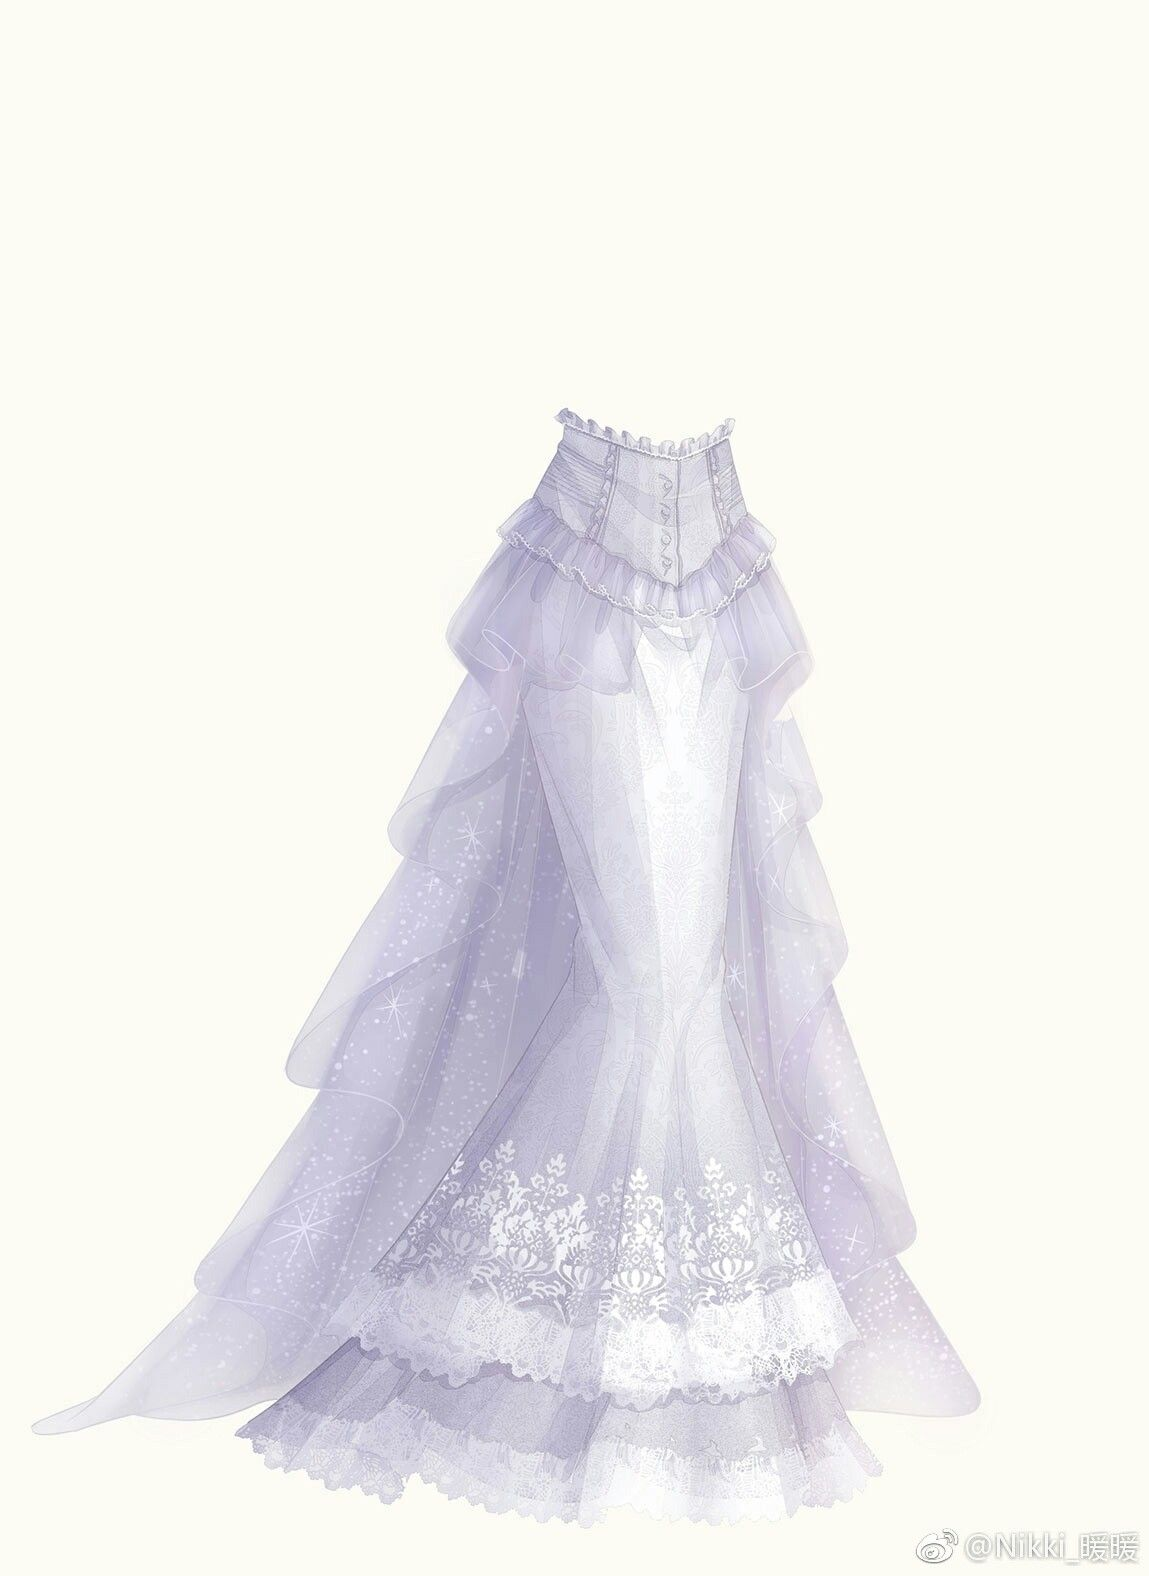 Pin by ruudarling on clothing pinterest fashion design fanart